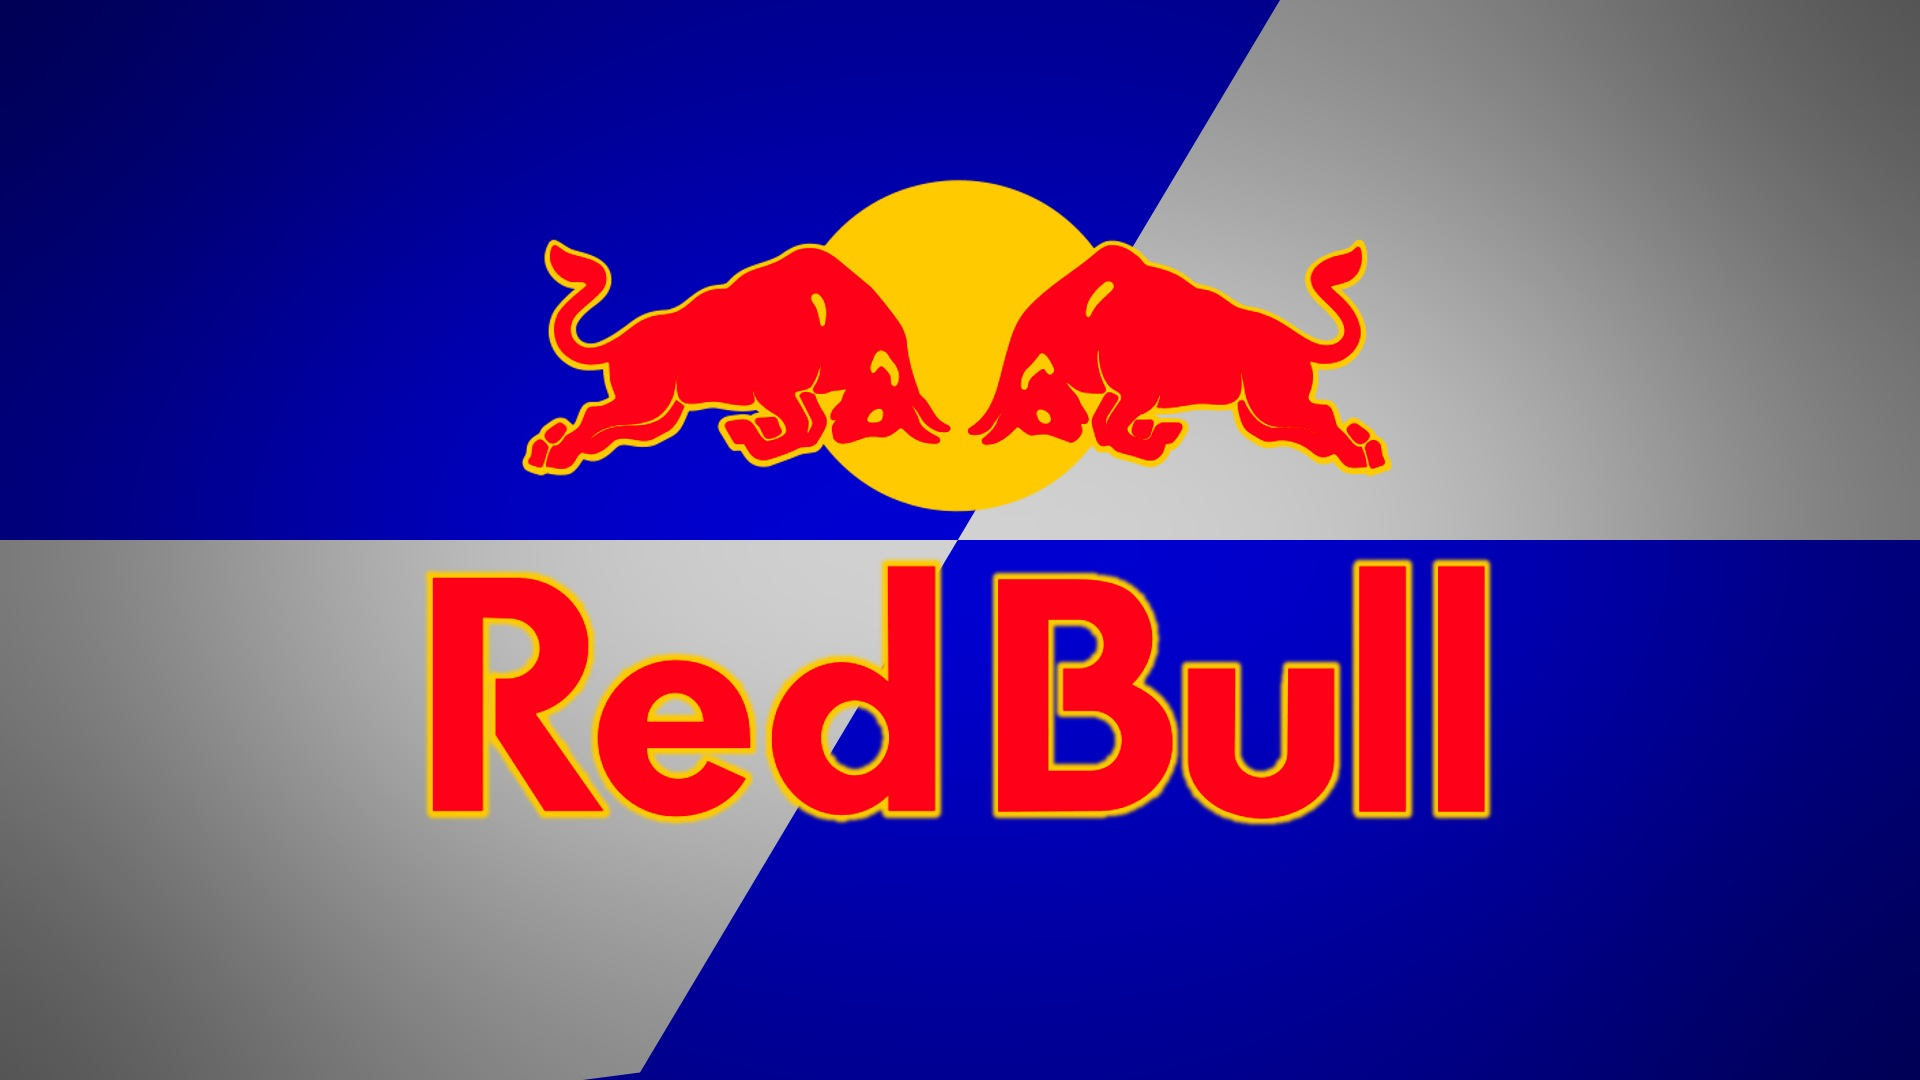 Images of Red Bull | 1920x1080